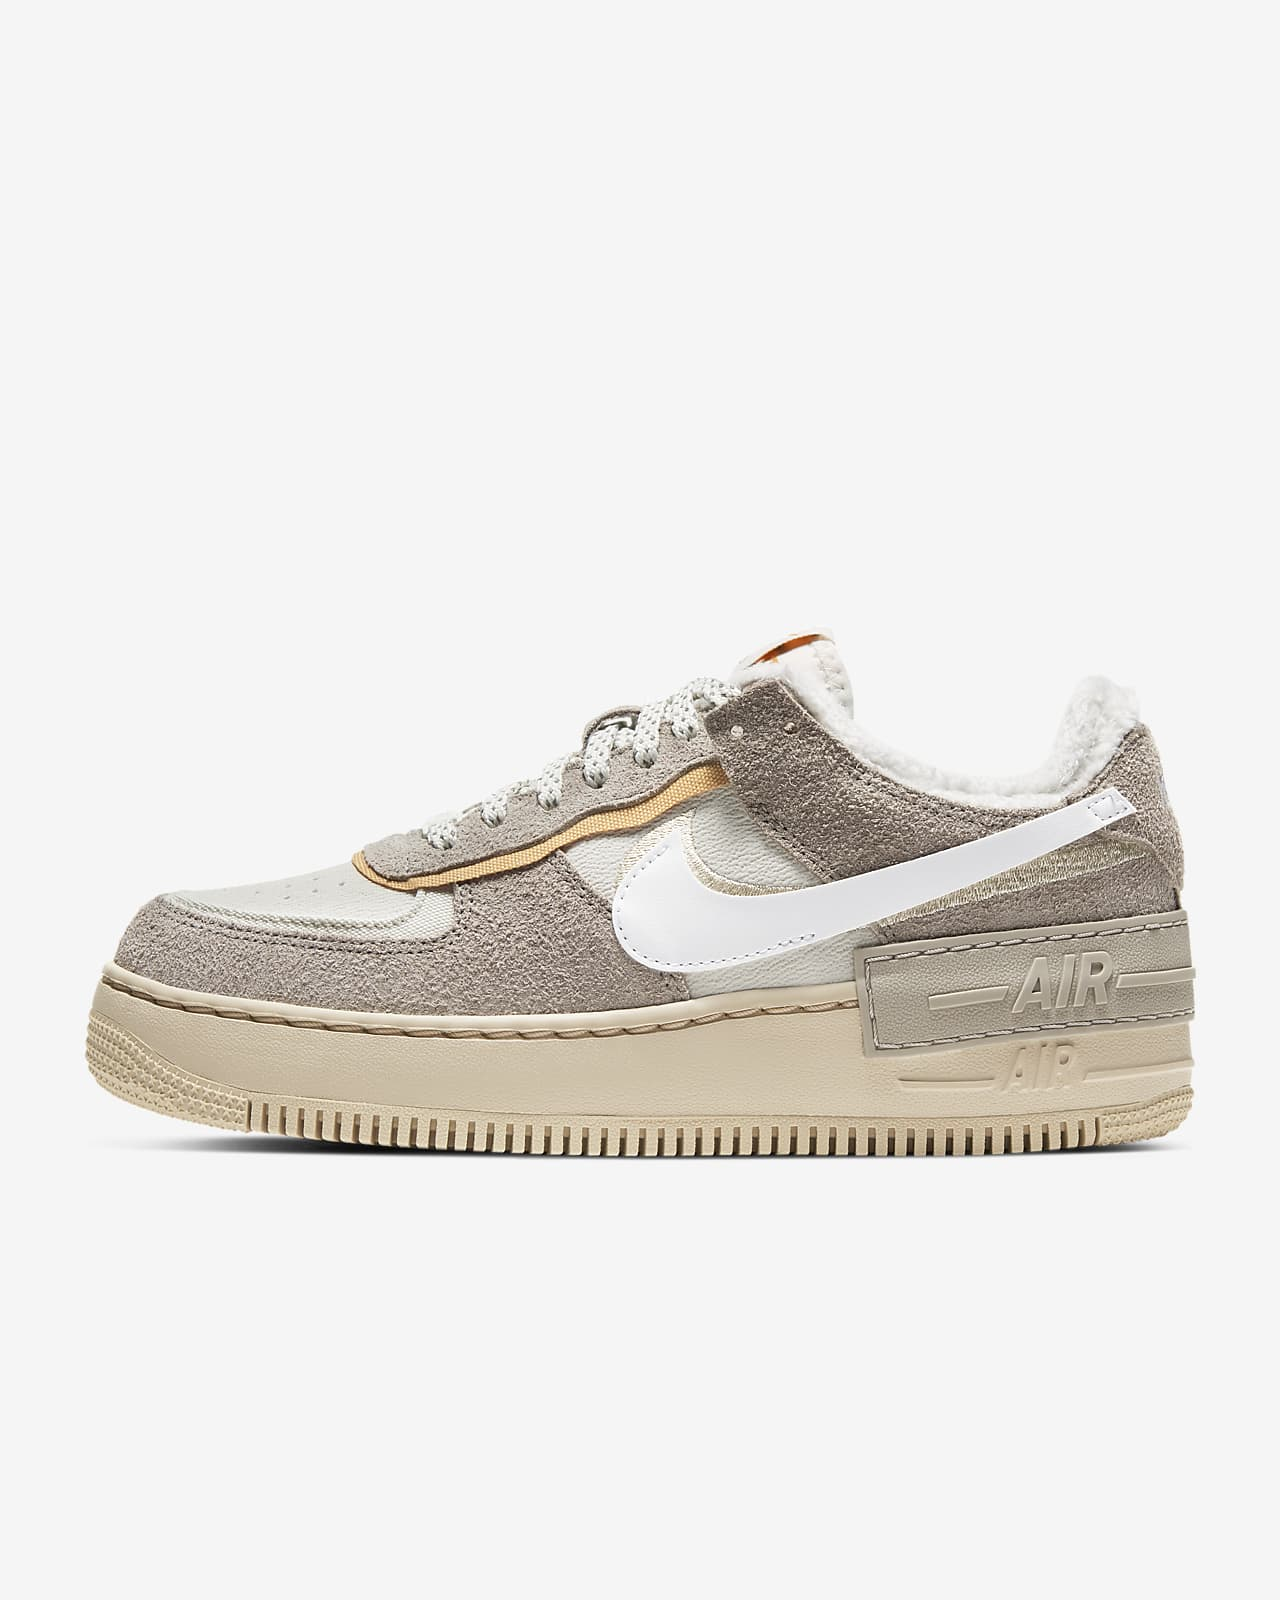 Nike Air Force 1 Shadow Women S Shoe Nike Jp Nike air force 1 shadow se unboxing and on feet review purchase the shoes women's nike air force 1 shadow se. nike air force 1 shadow women s shoe